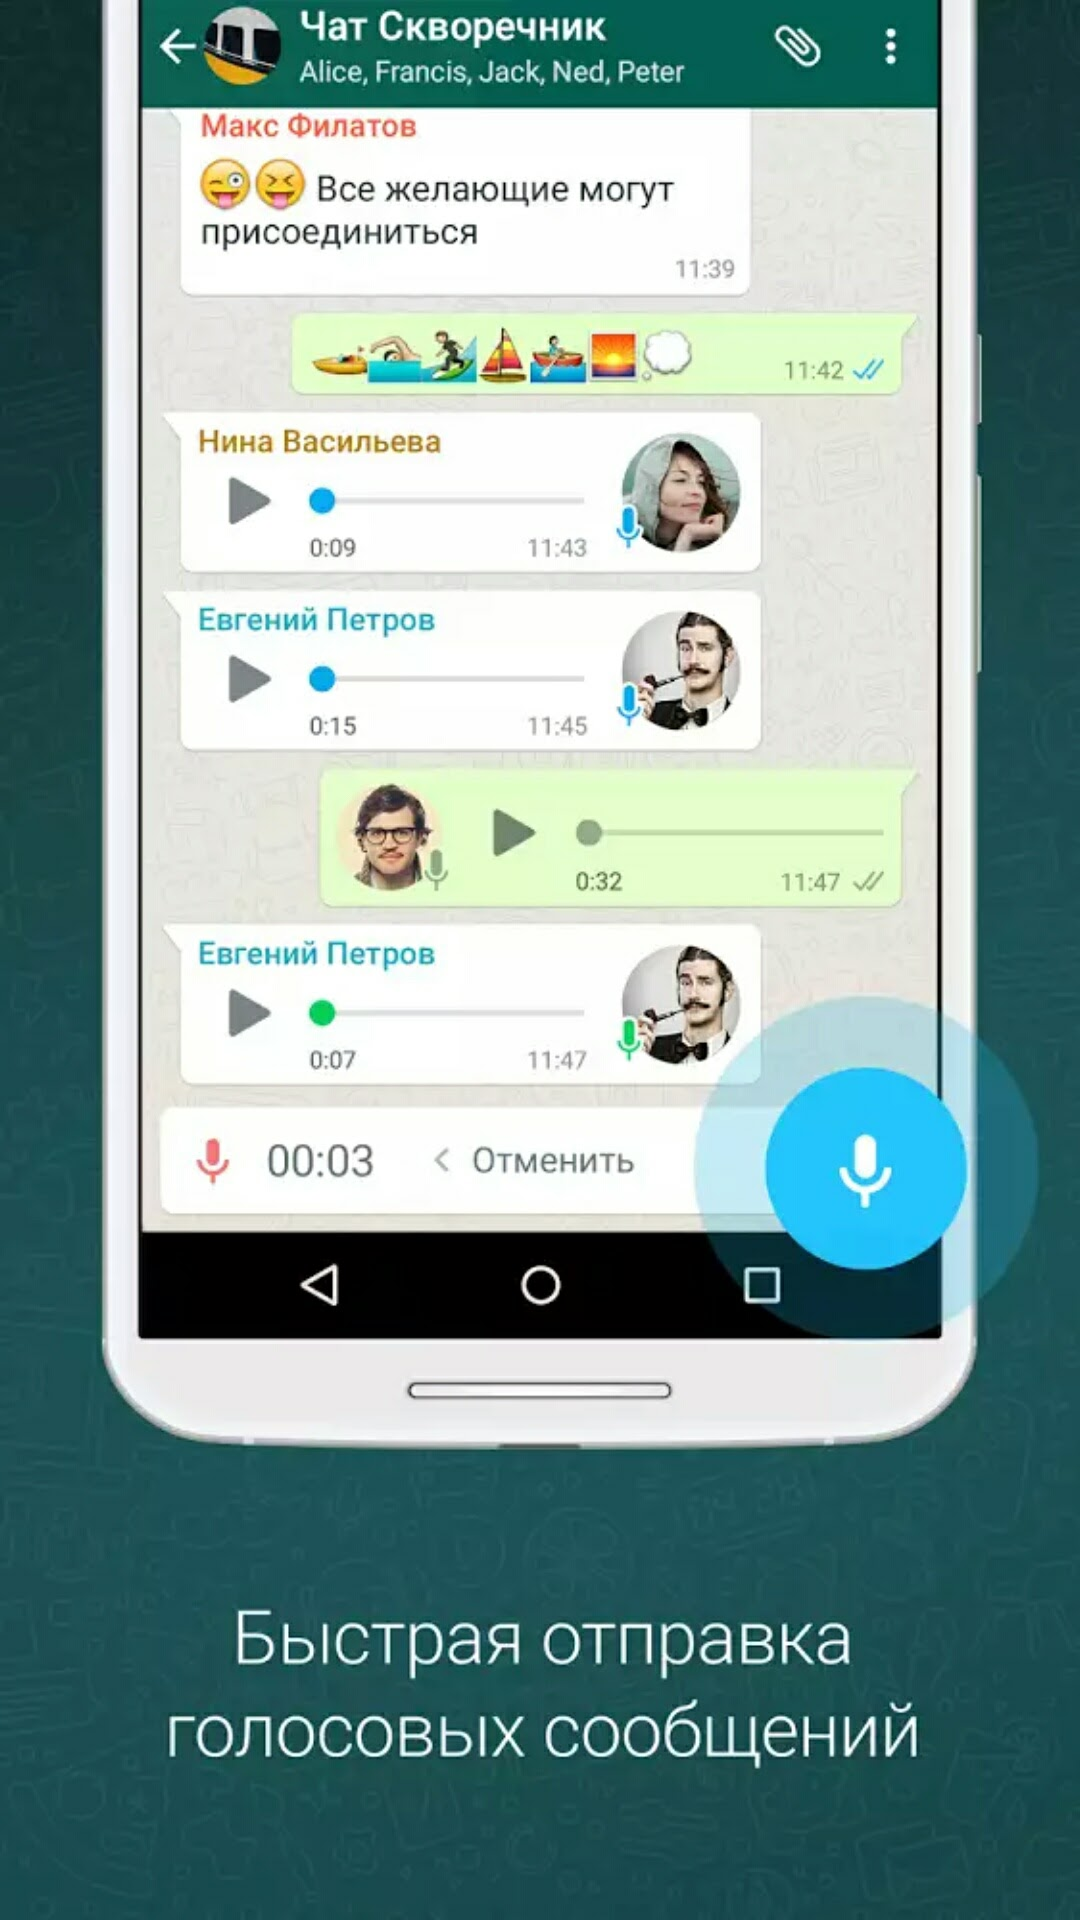 How much does it cost to develop the WhatsApp-like messenger? | Blog